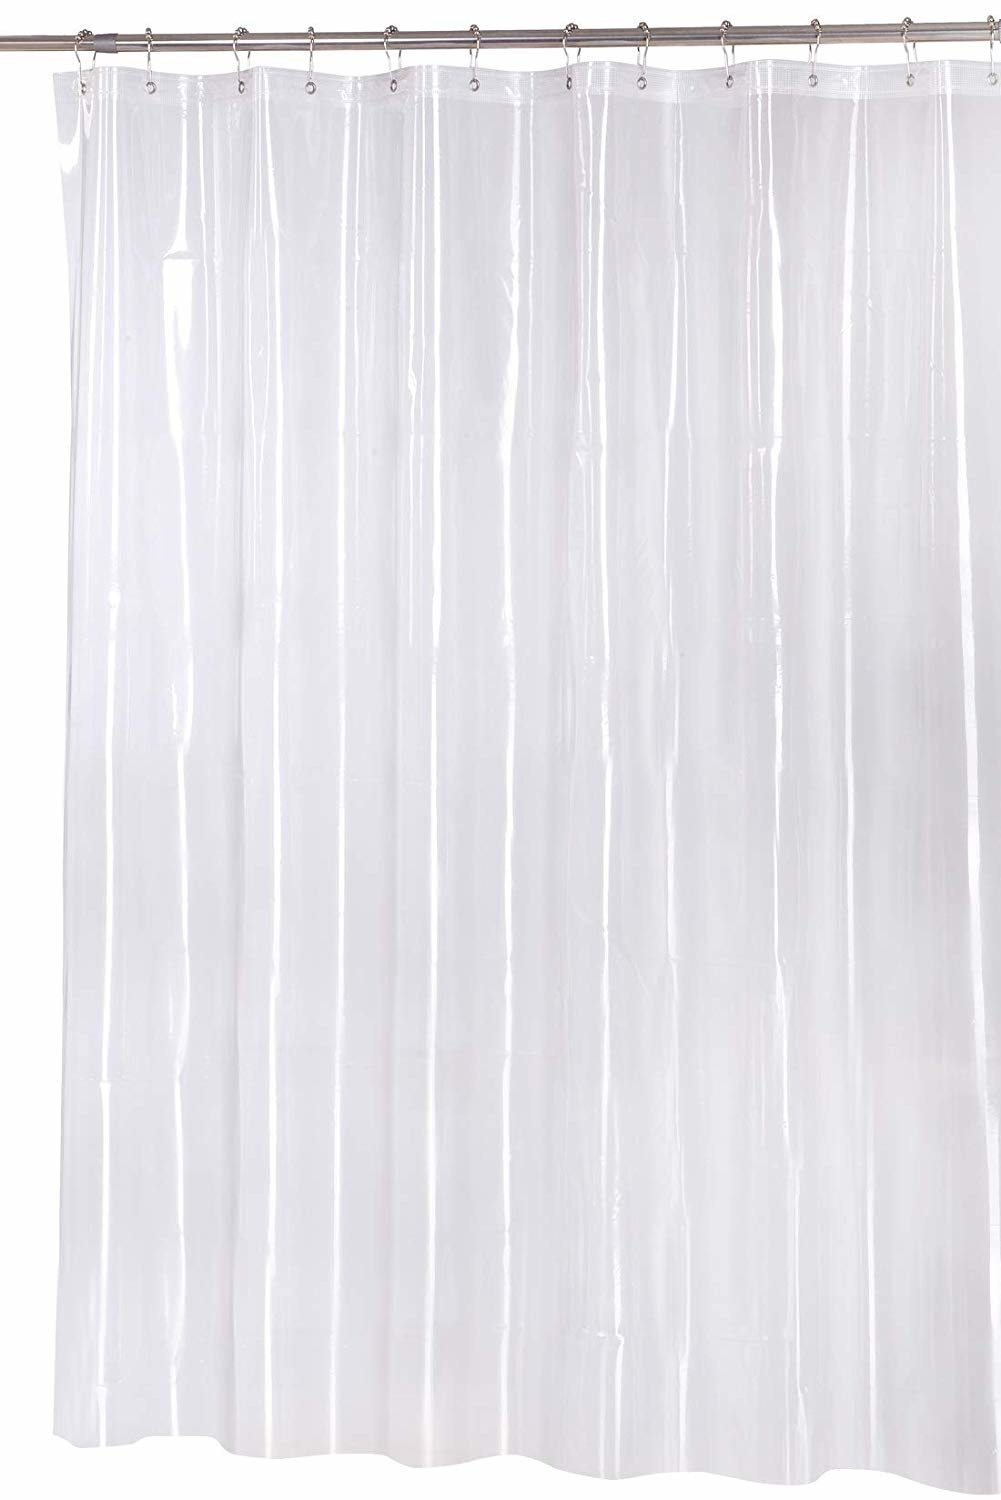 best shower curtains you can get on amazon